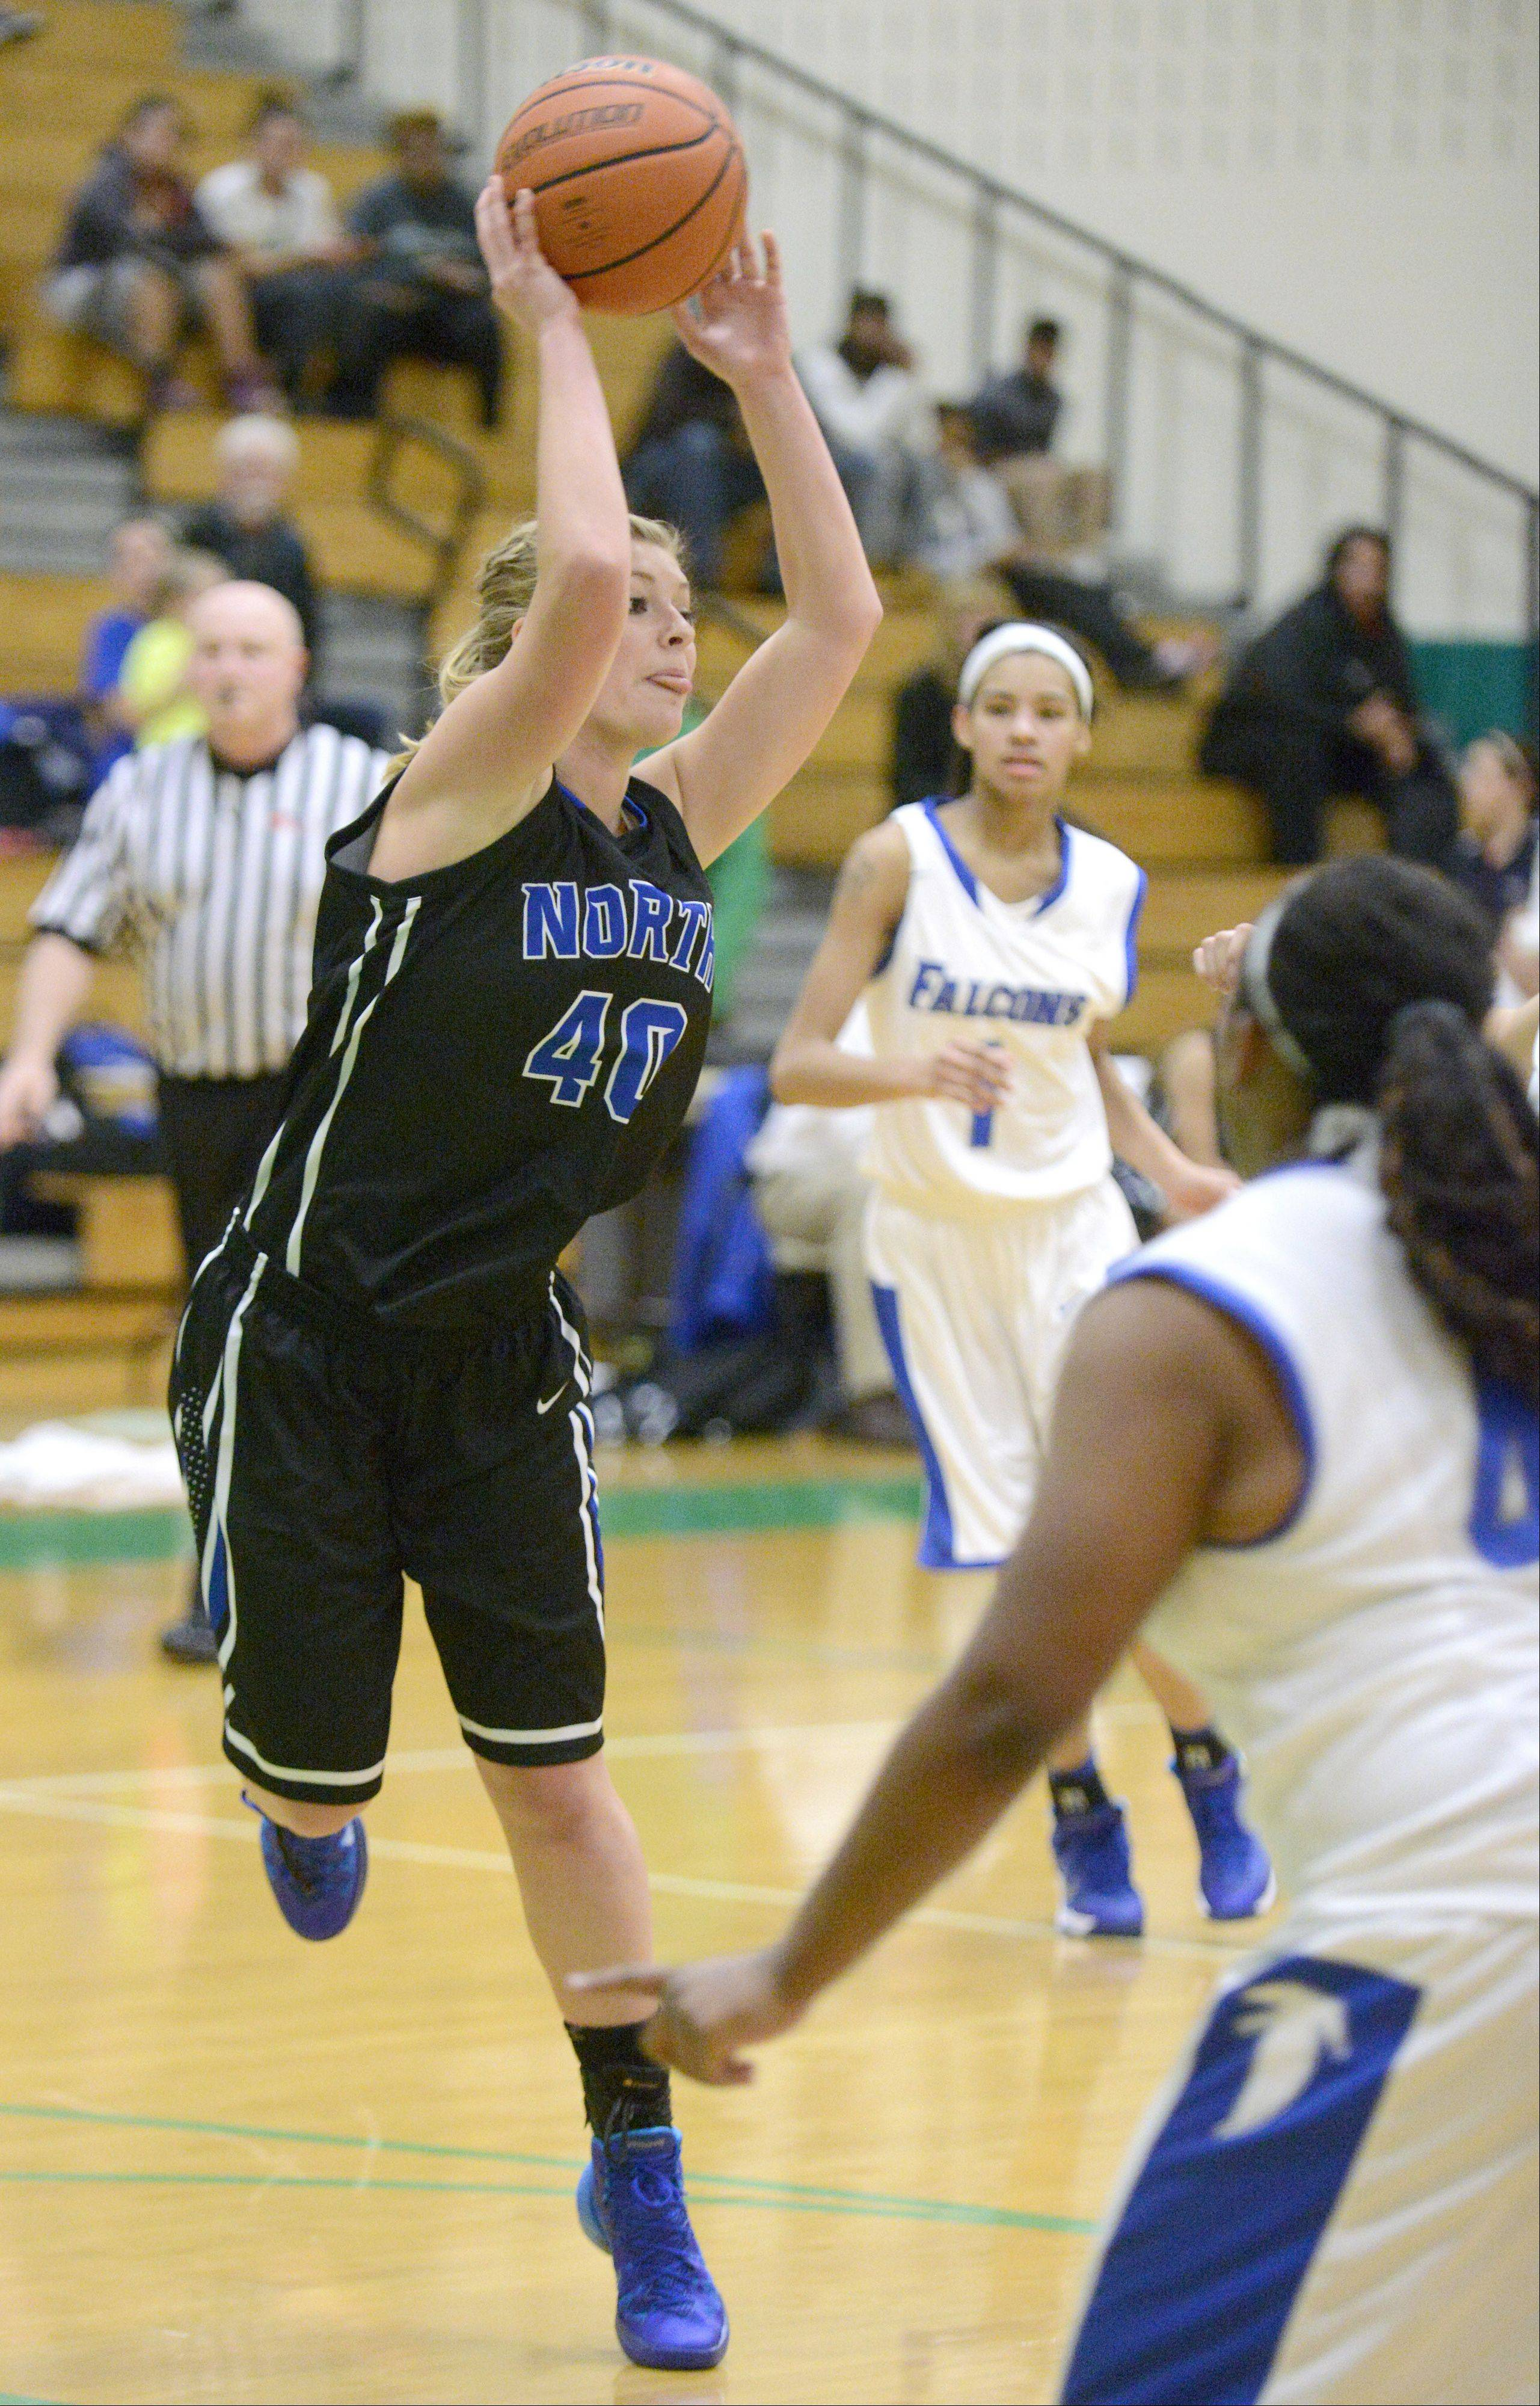 St. Charles North's Abby Mackay-Zacker whips the ball to a teammate in the second quarter on Friday, November 22.